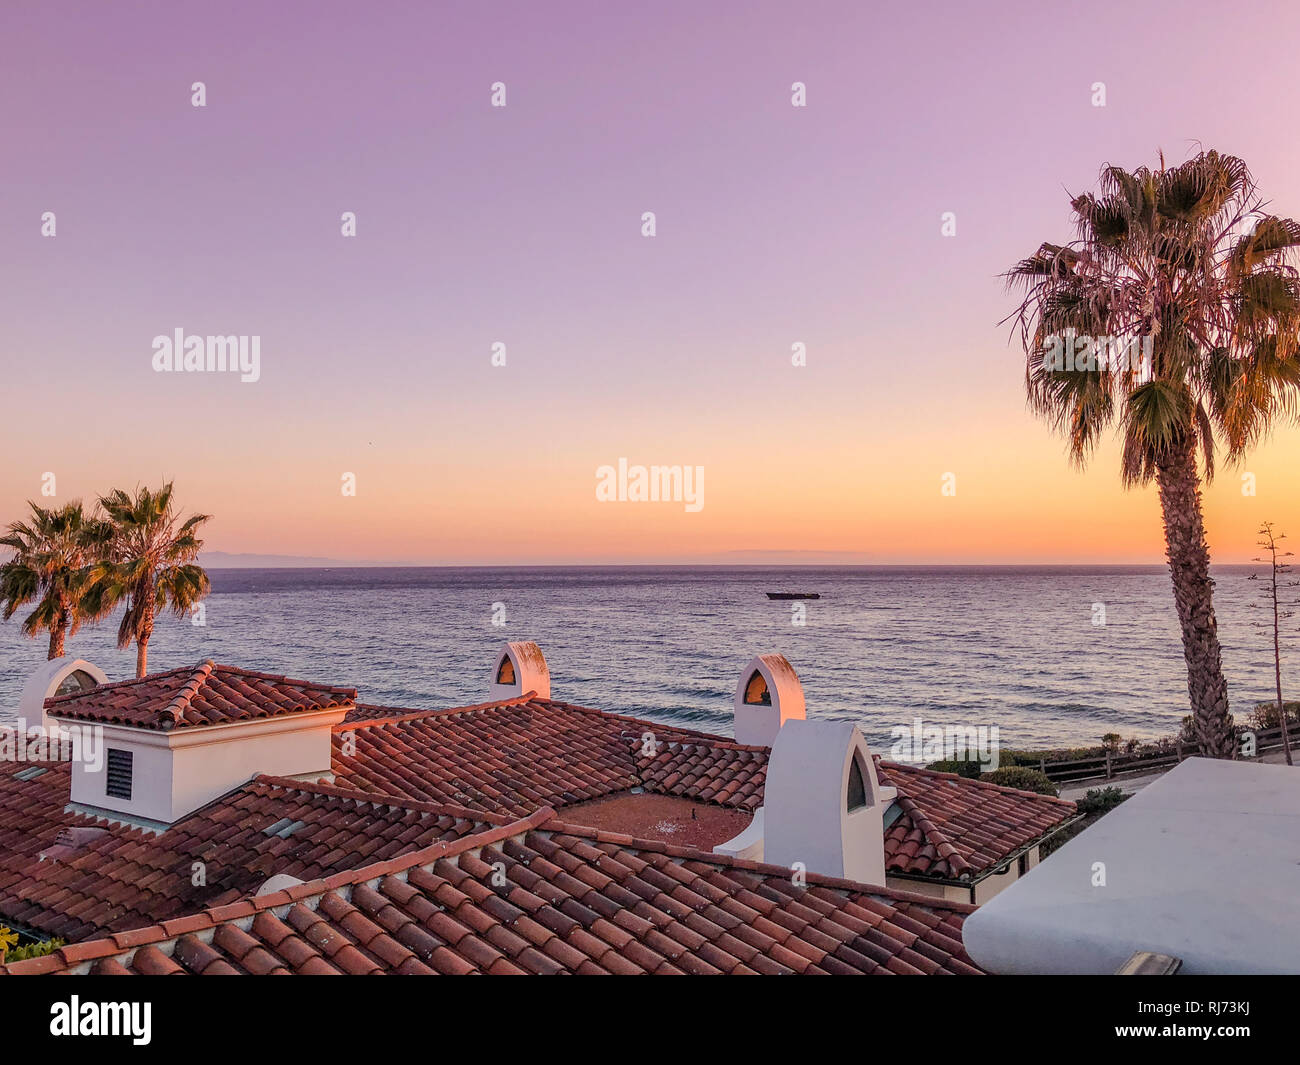 Sunset Over Pacific Ocean Near Santa Barbara Usa Rooftops And Palm Trees Stock Photo Alamy